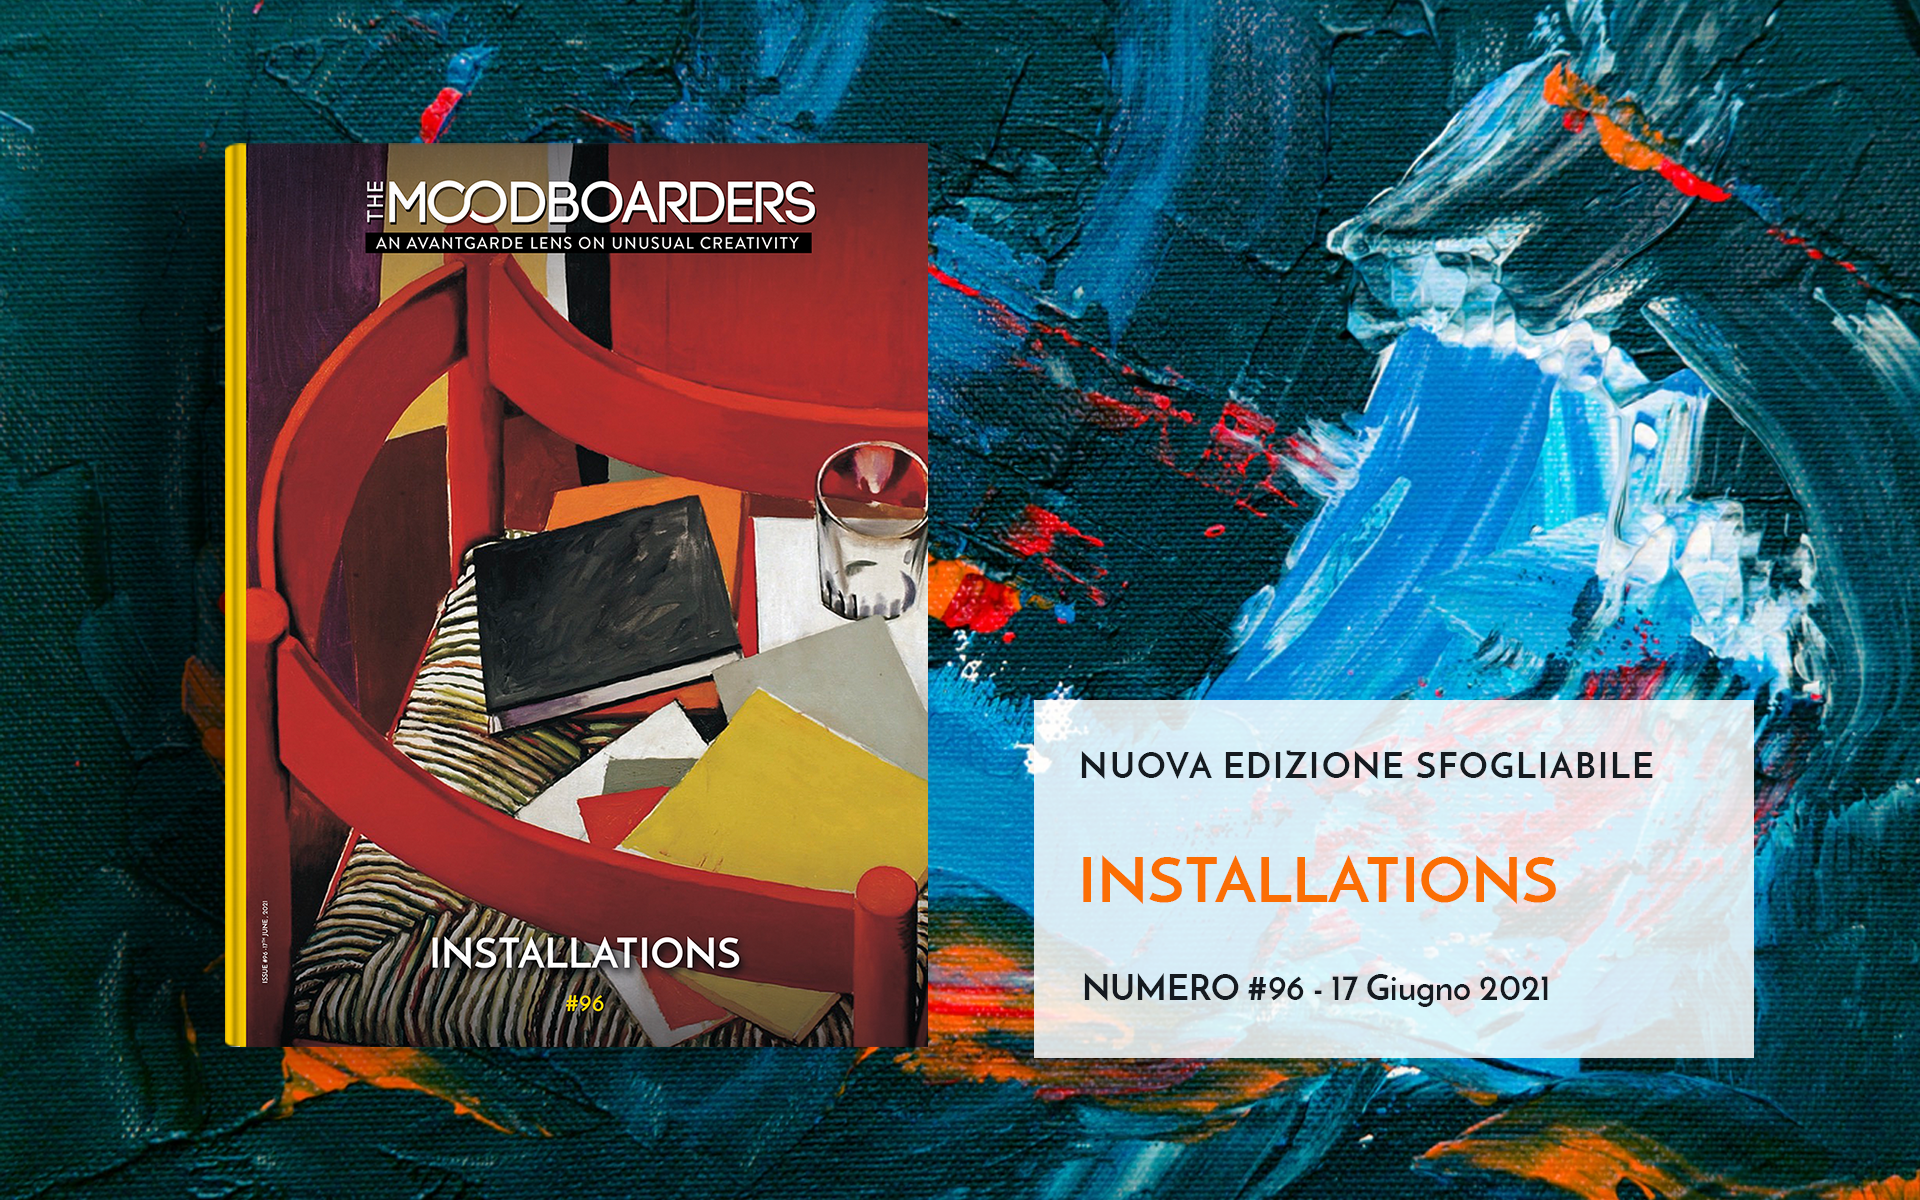 Installations - The Moodboarders